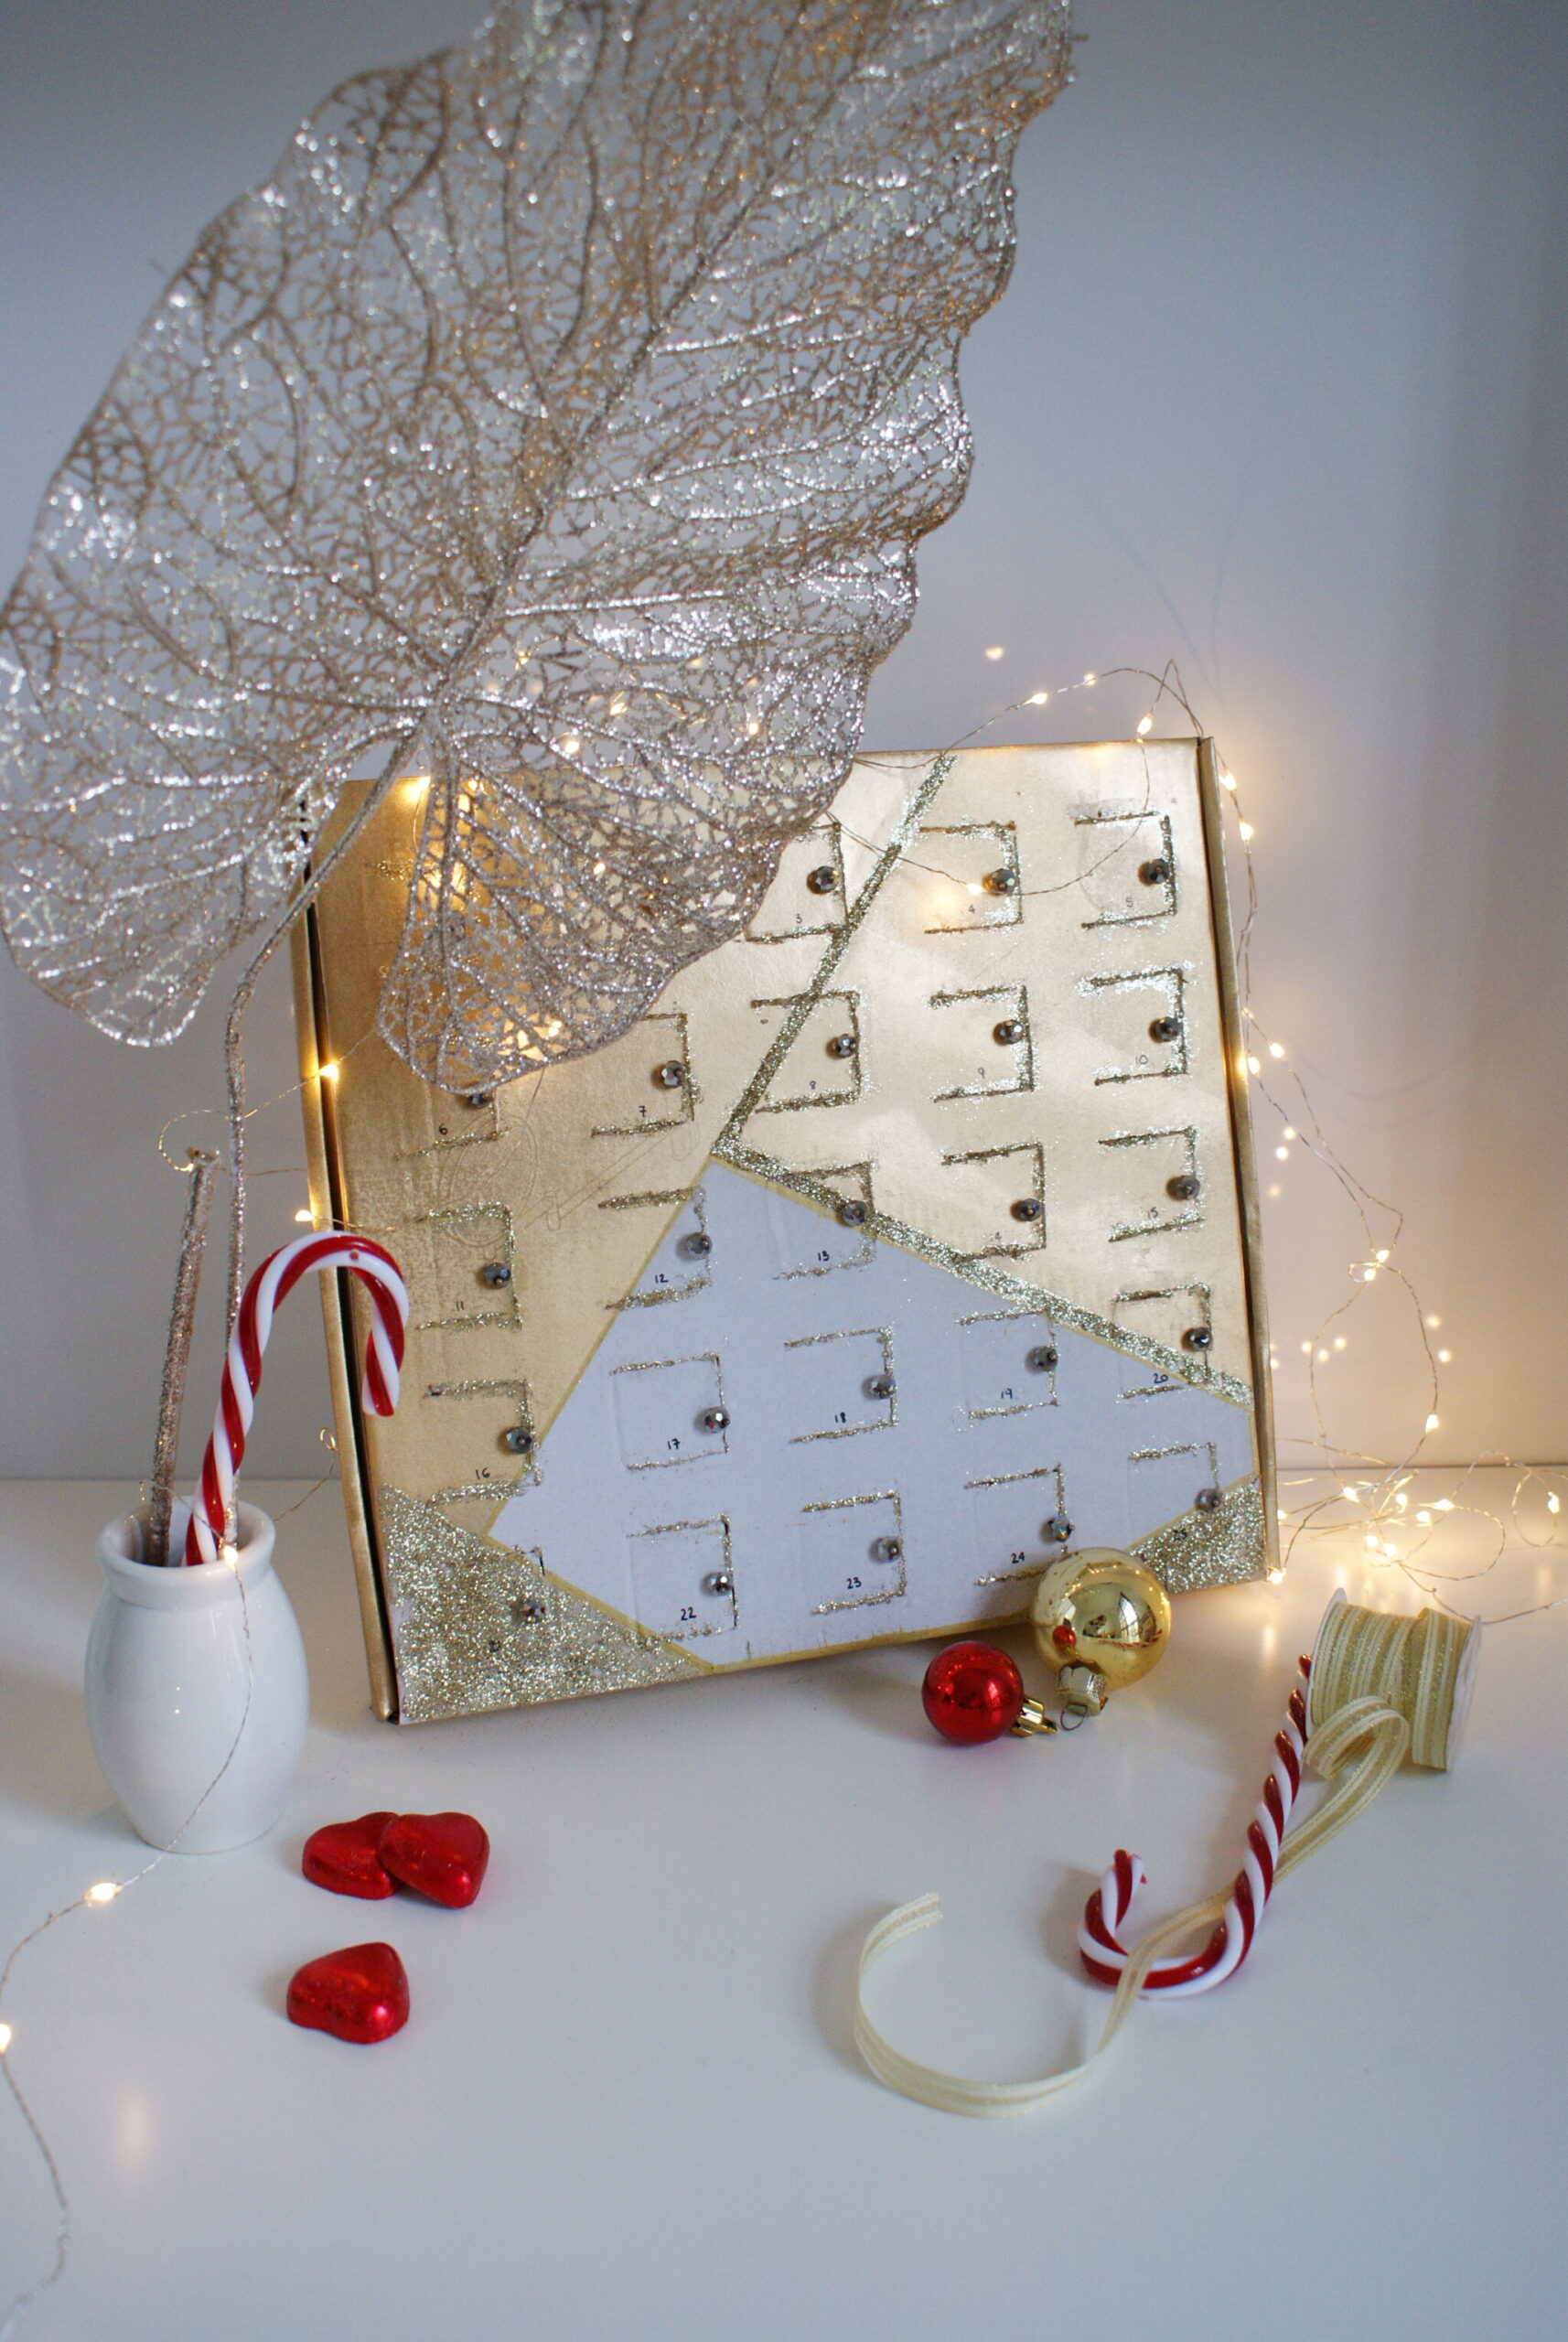 diy advent calendar genius idea last minute reusable box